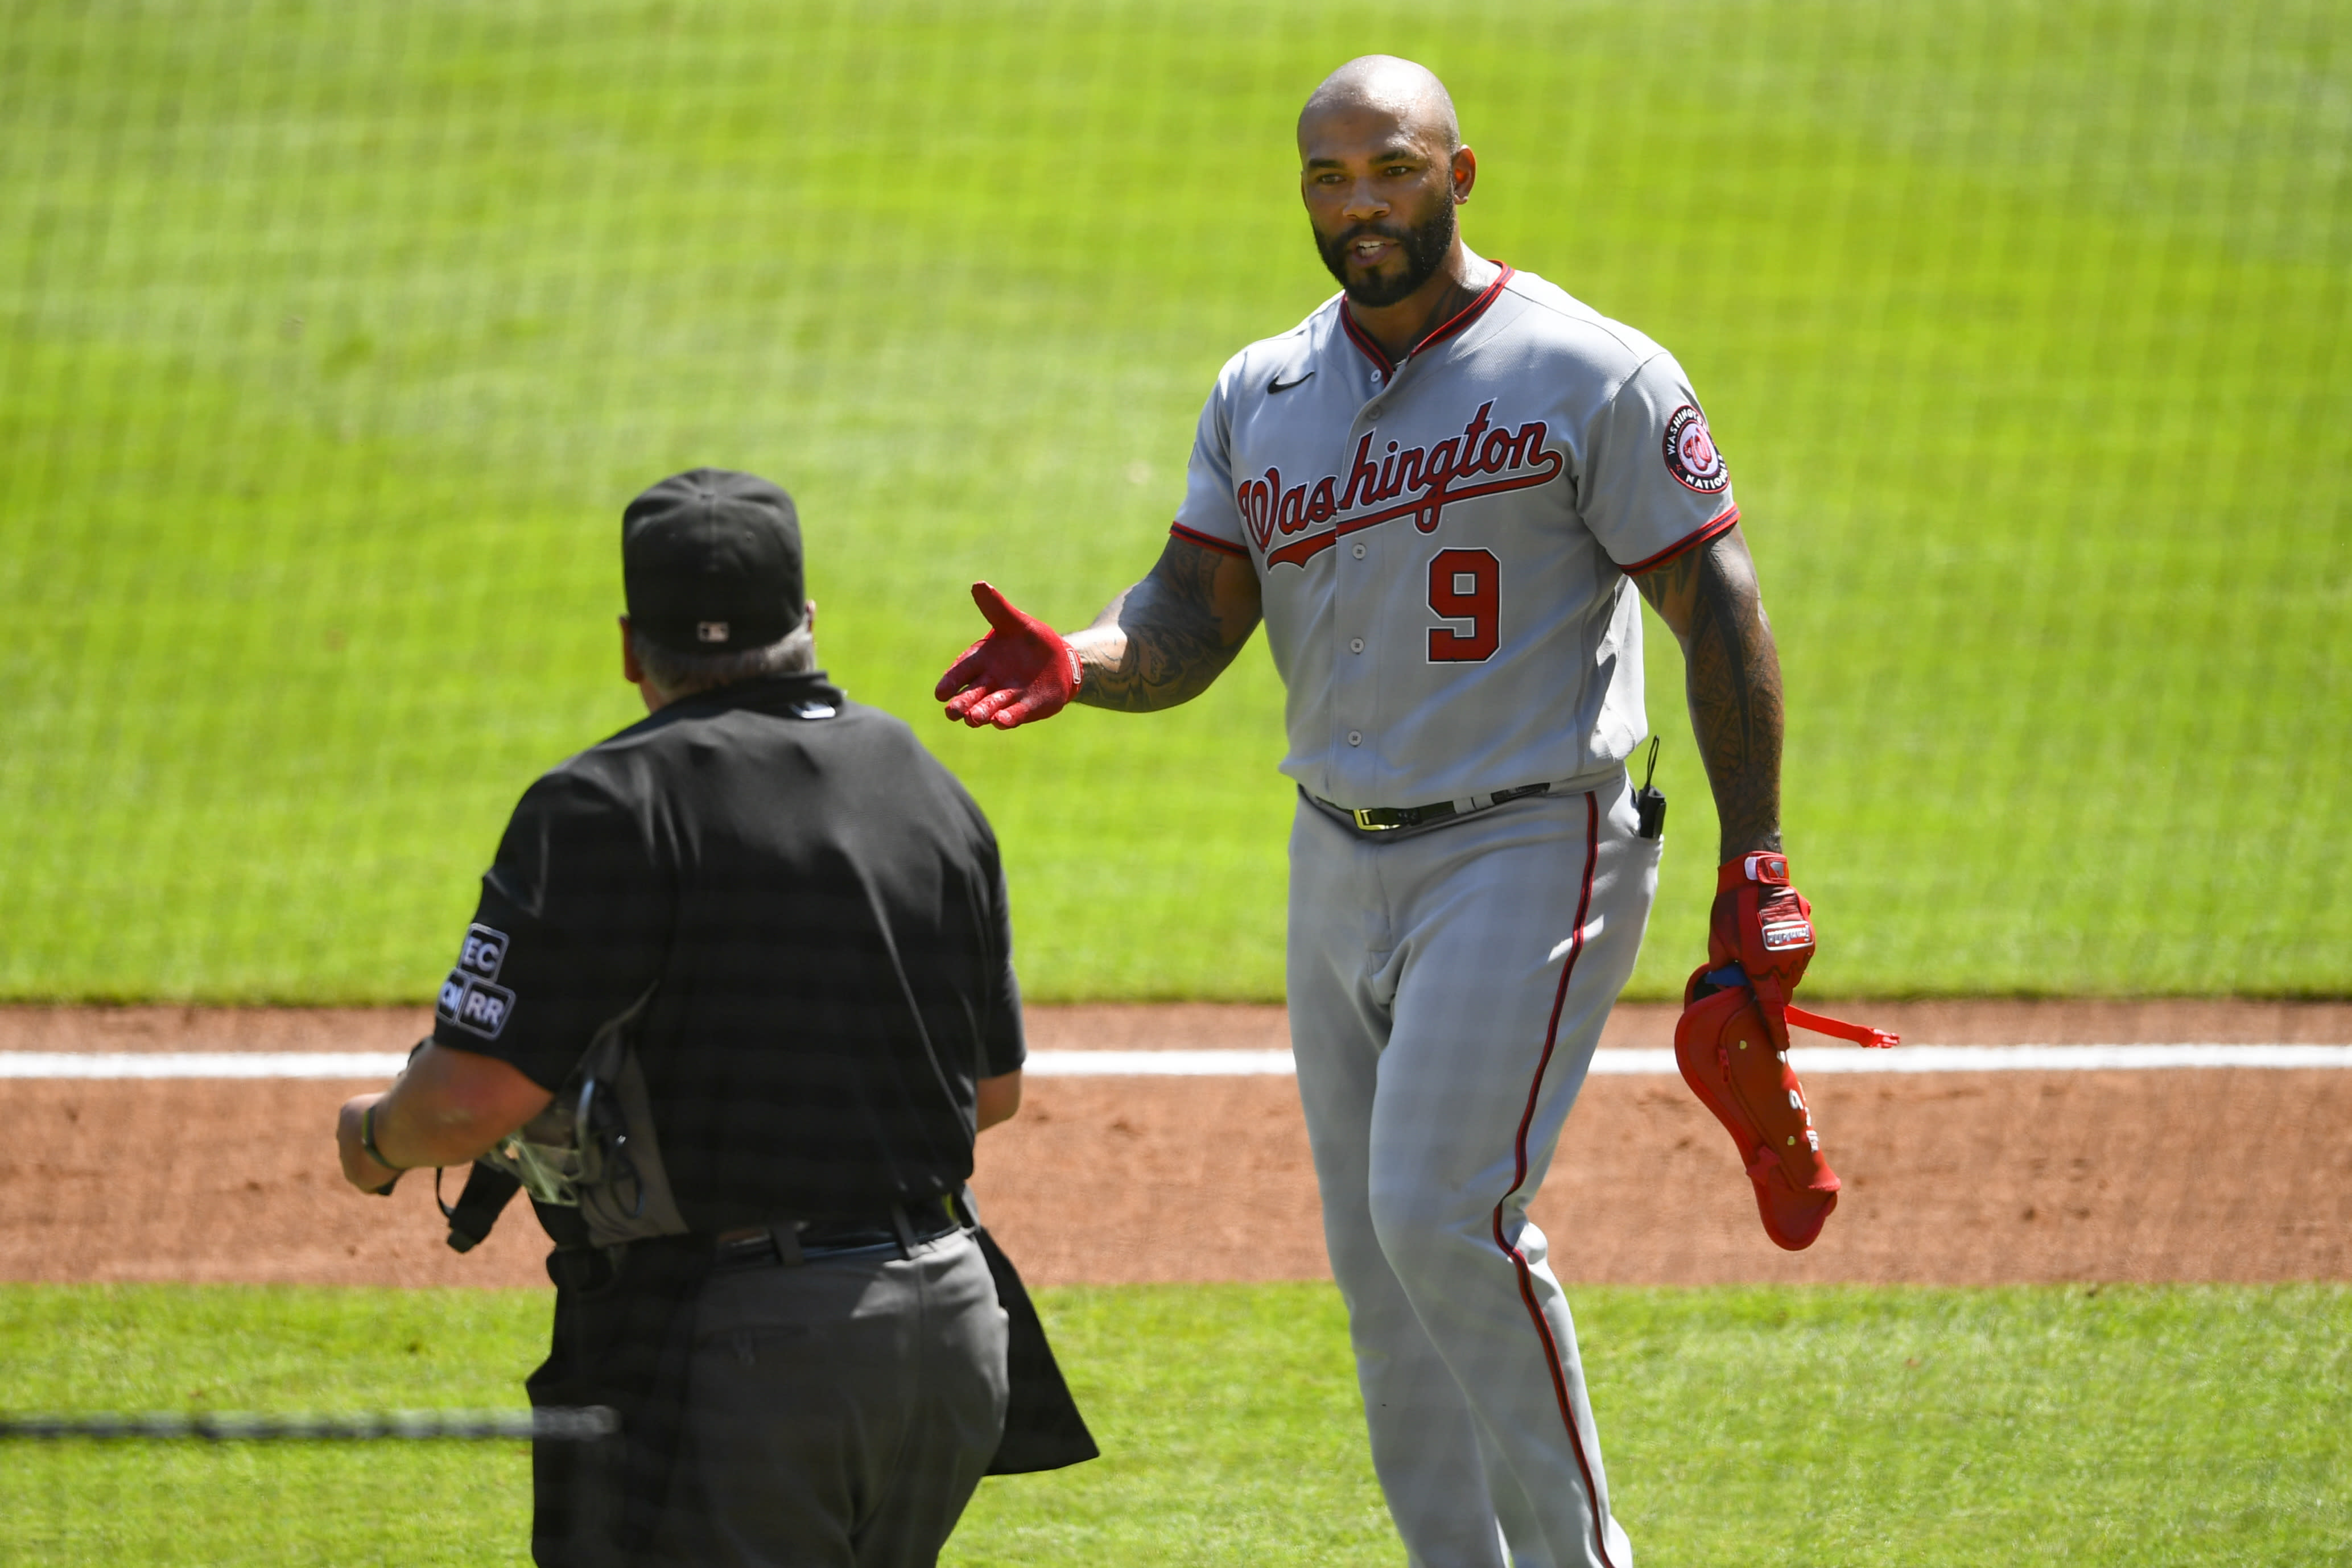 Washington Nationals' Eric Thames talks to an umpire after striking out against the Atlanta Braves during the seventh inning of a baseball game Sunday, Sept. 6, 2020, in Atlanta. (AP Photo/John Amis)